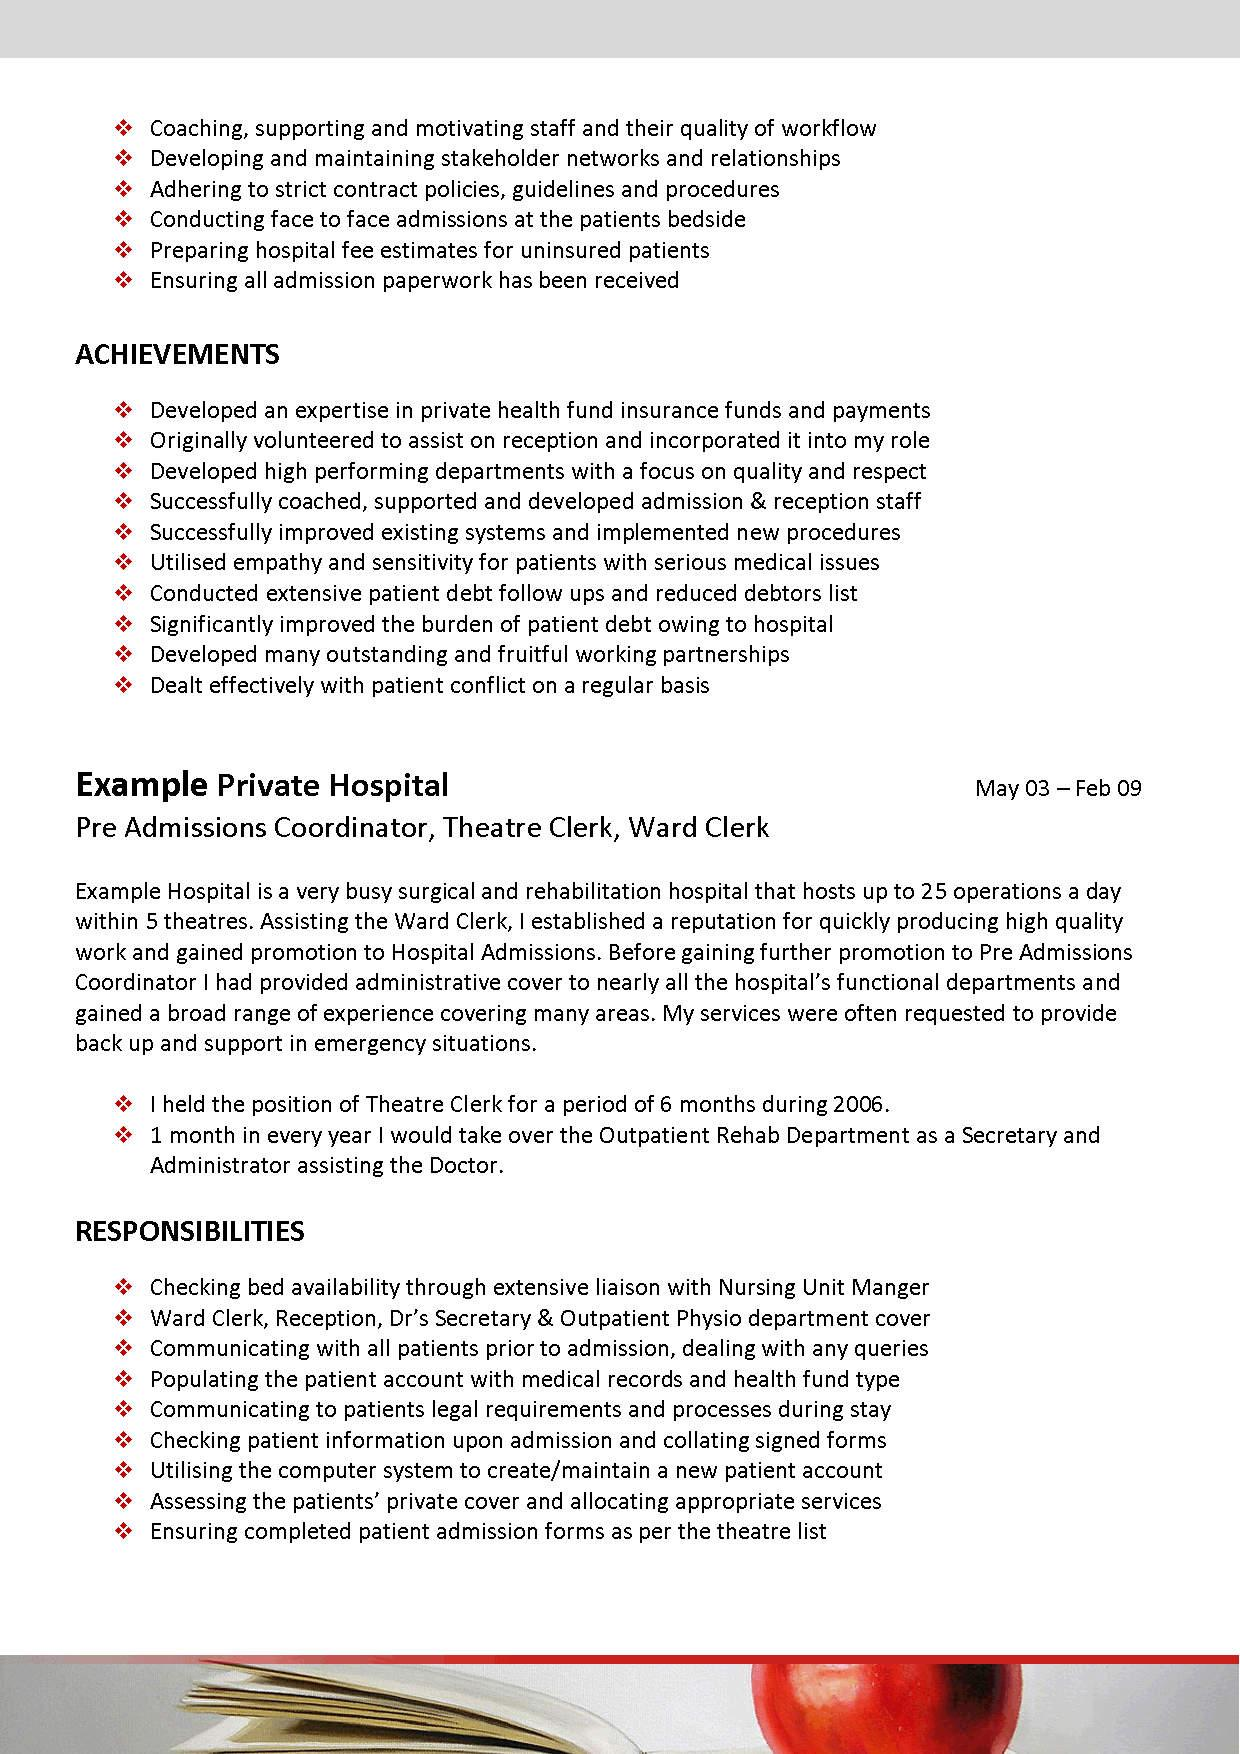 How to address selection criteria in cover letter examples cover example cover letter with selection criteria cover selection cover letter addressing selection criteria examples cover madrichimfo madrichimfo Gallery